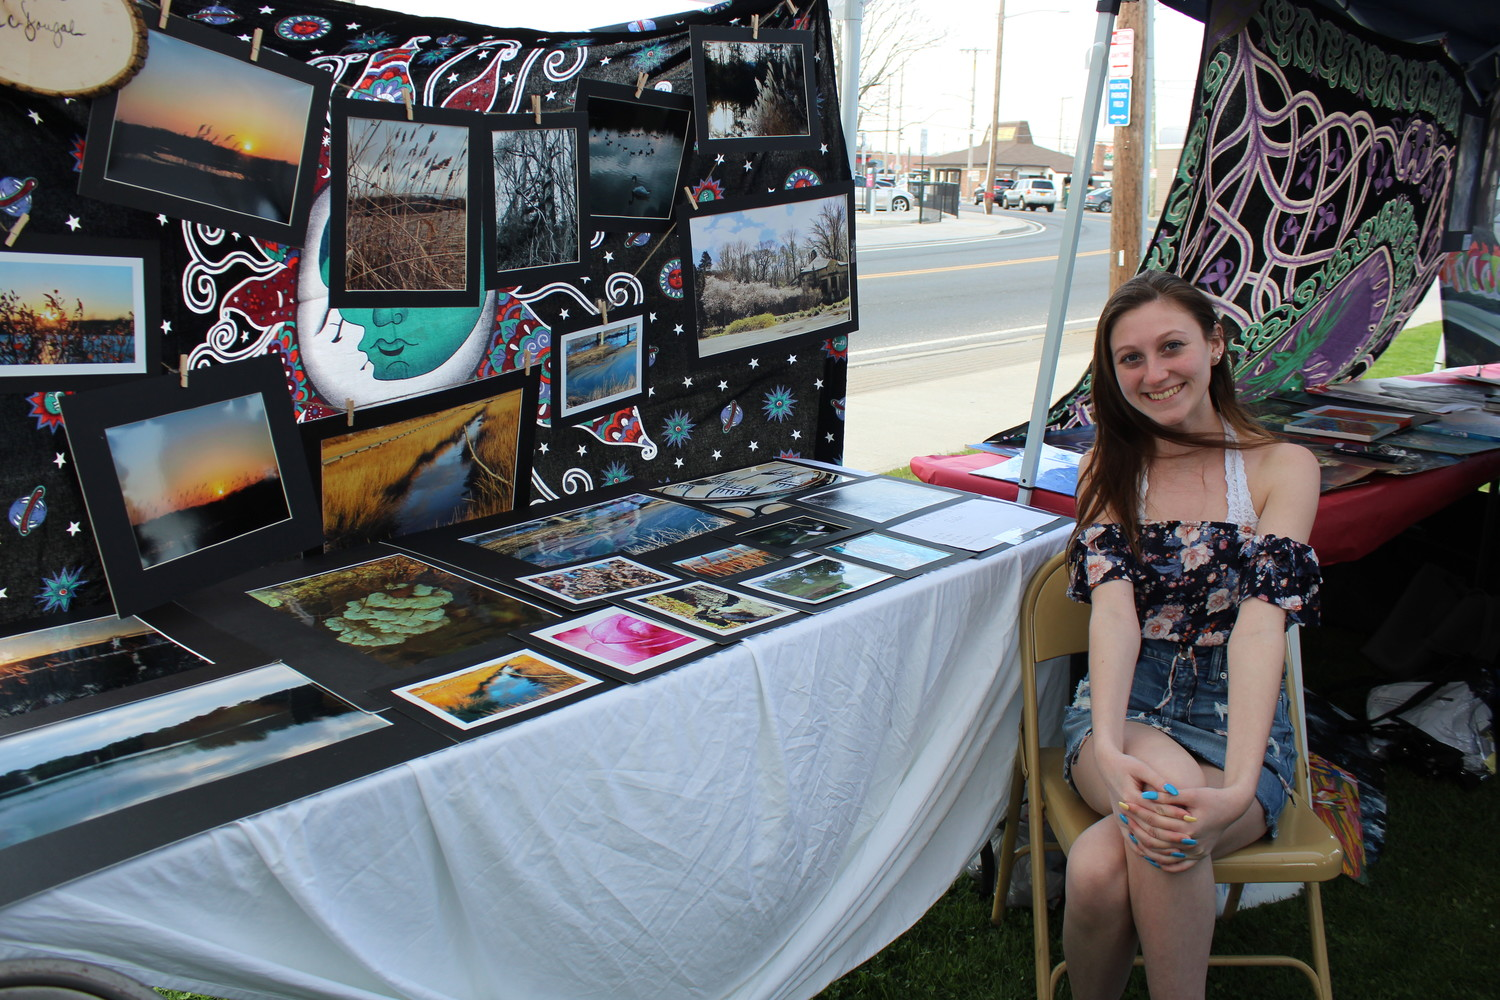 Kristina McDougal, a senior at East Rockaway Junior-Senior High School, displayed her photographs of scenery at the third annual Waterfront Art Walk.